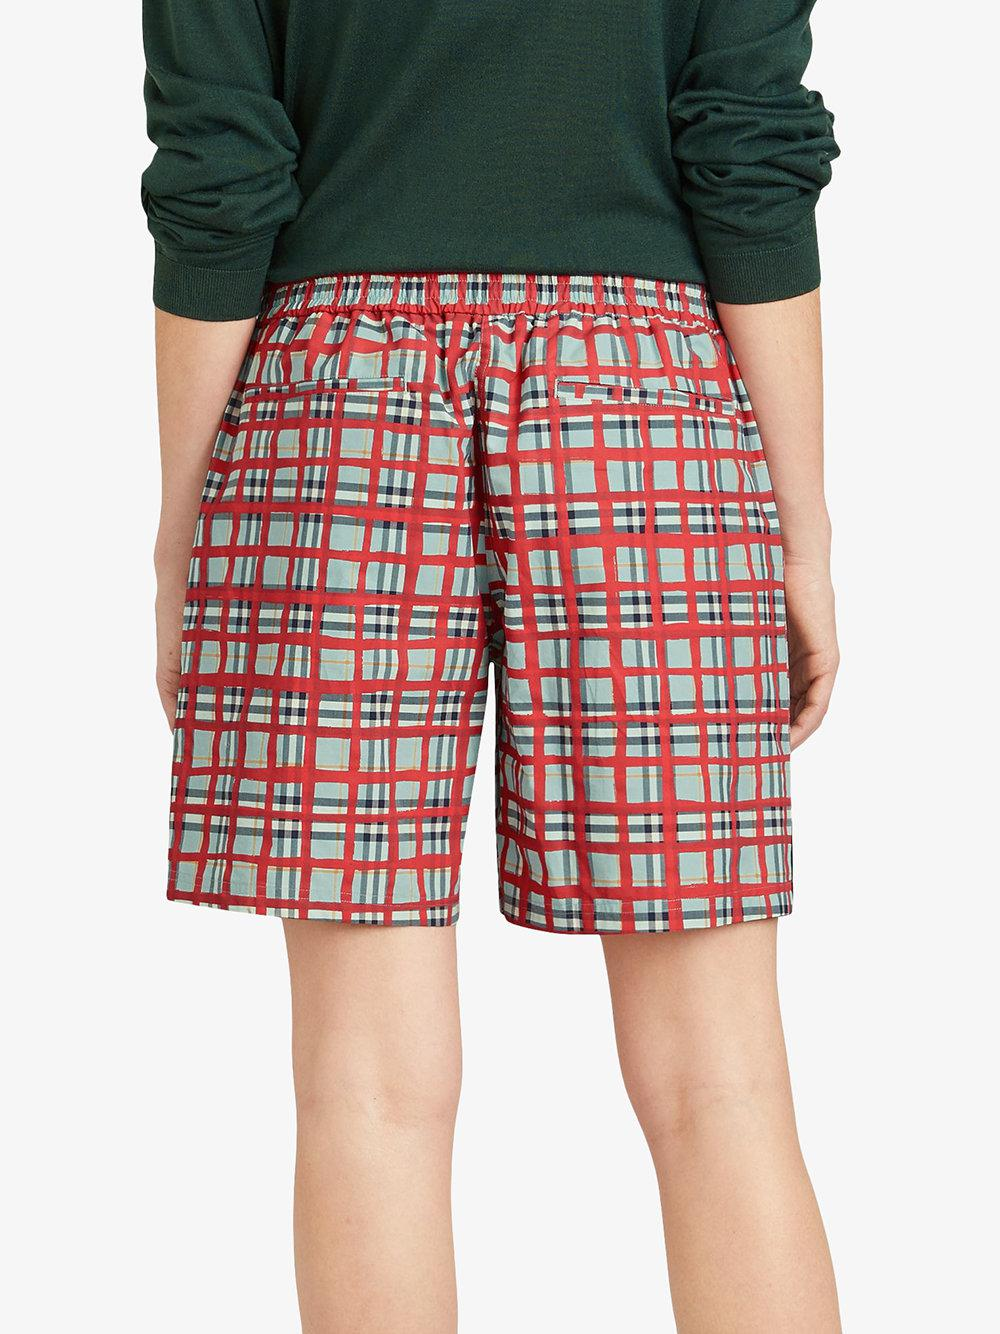 Lyst - Burberry Painted Check Cotton Drawcord Shorts in Blue 98dddcf35f